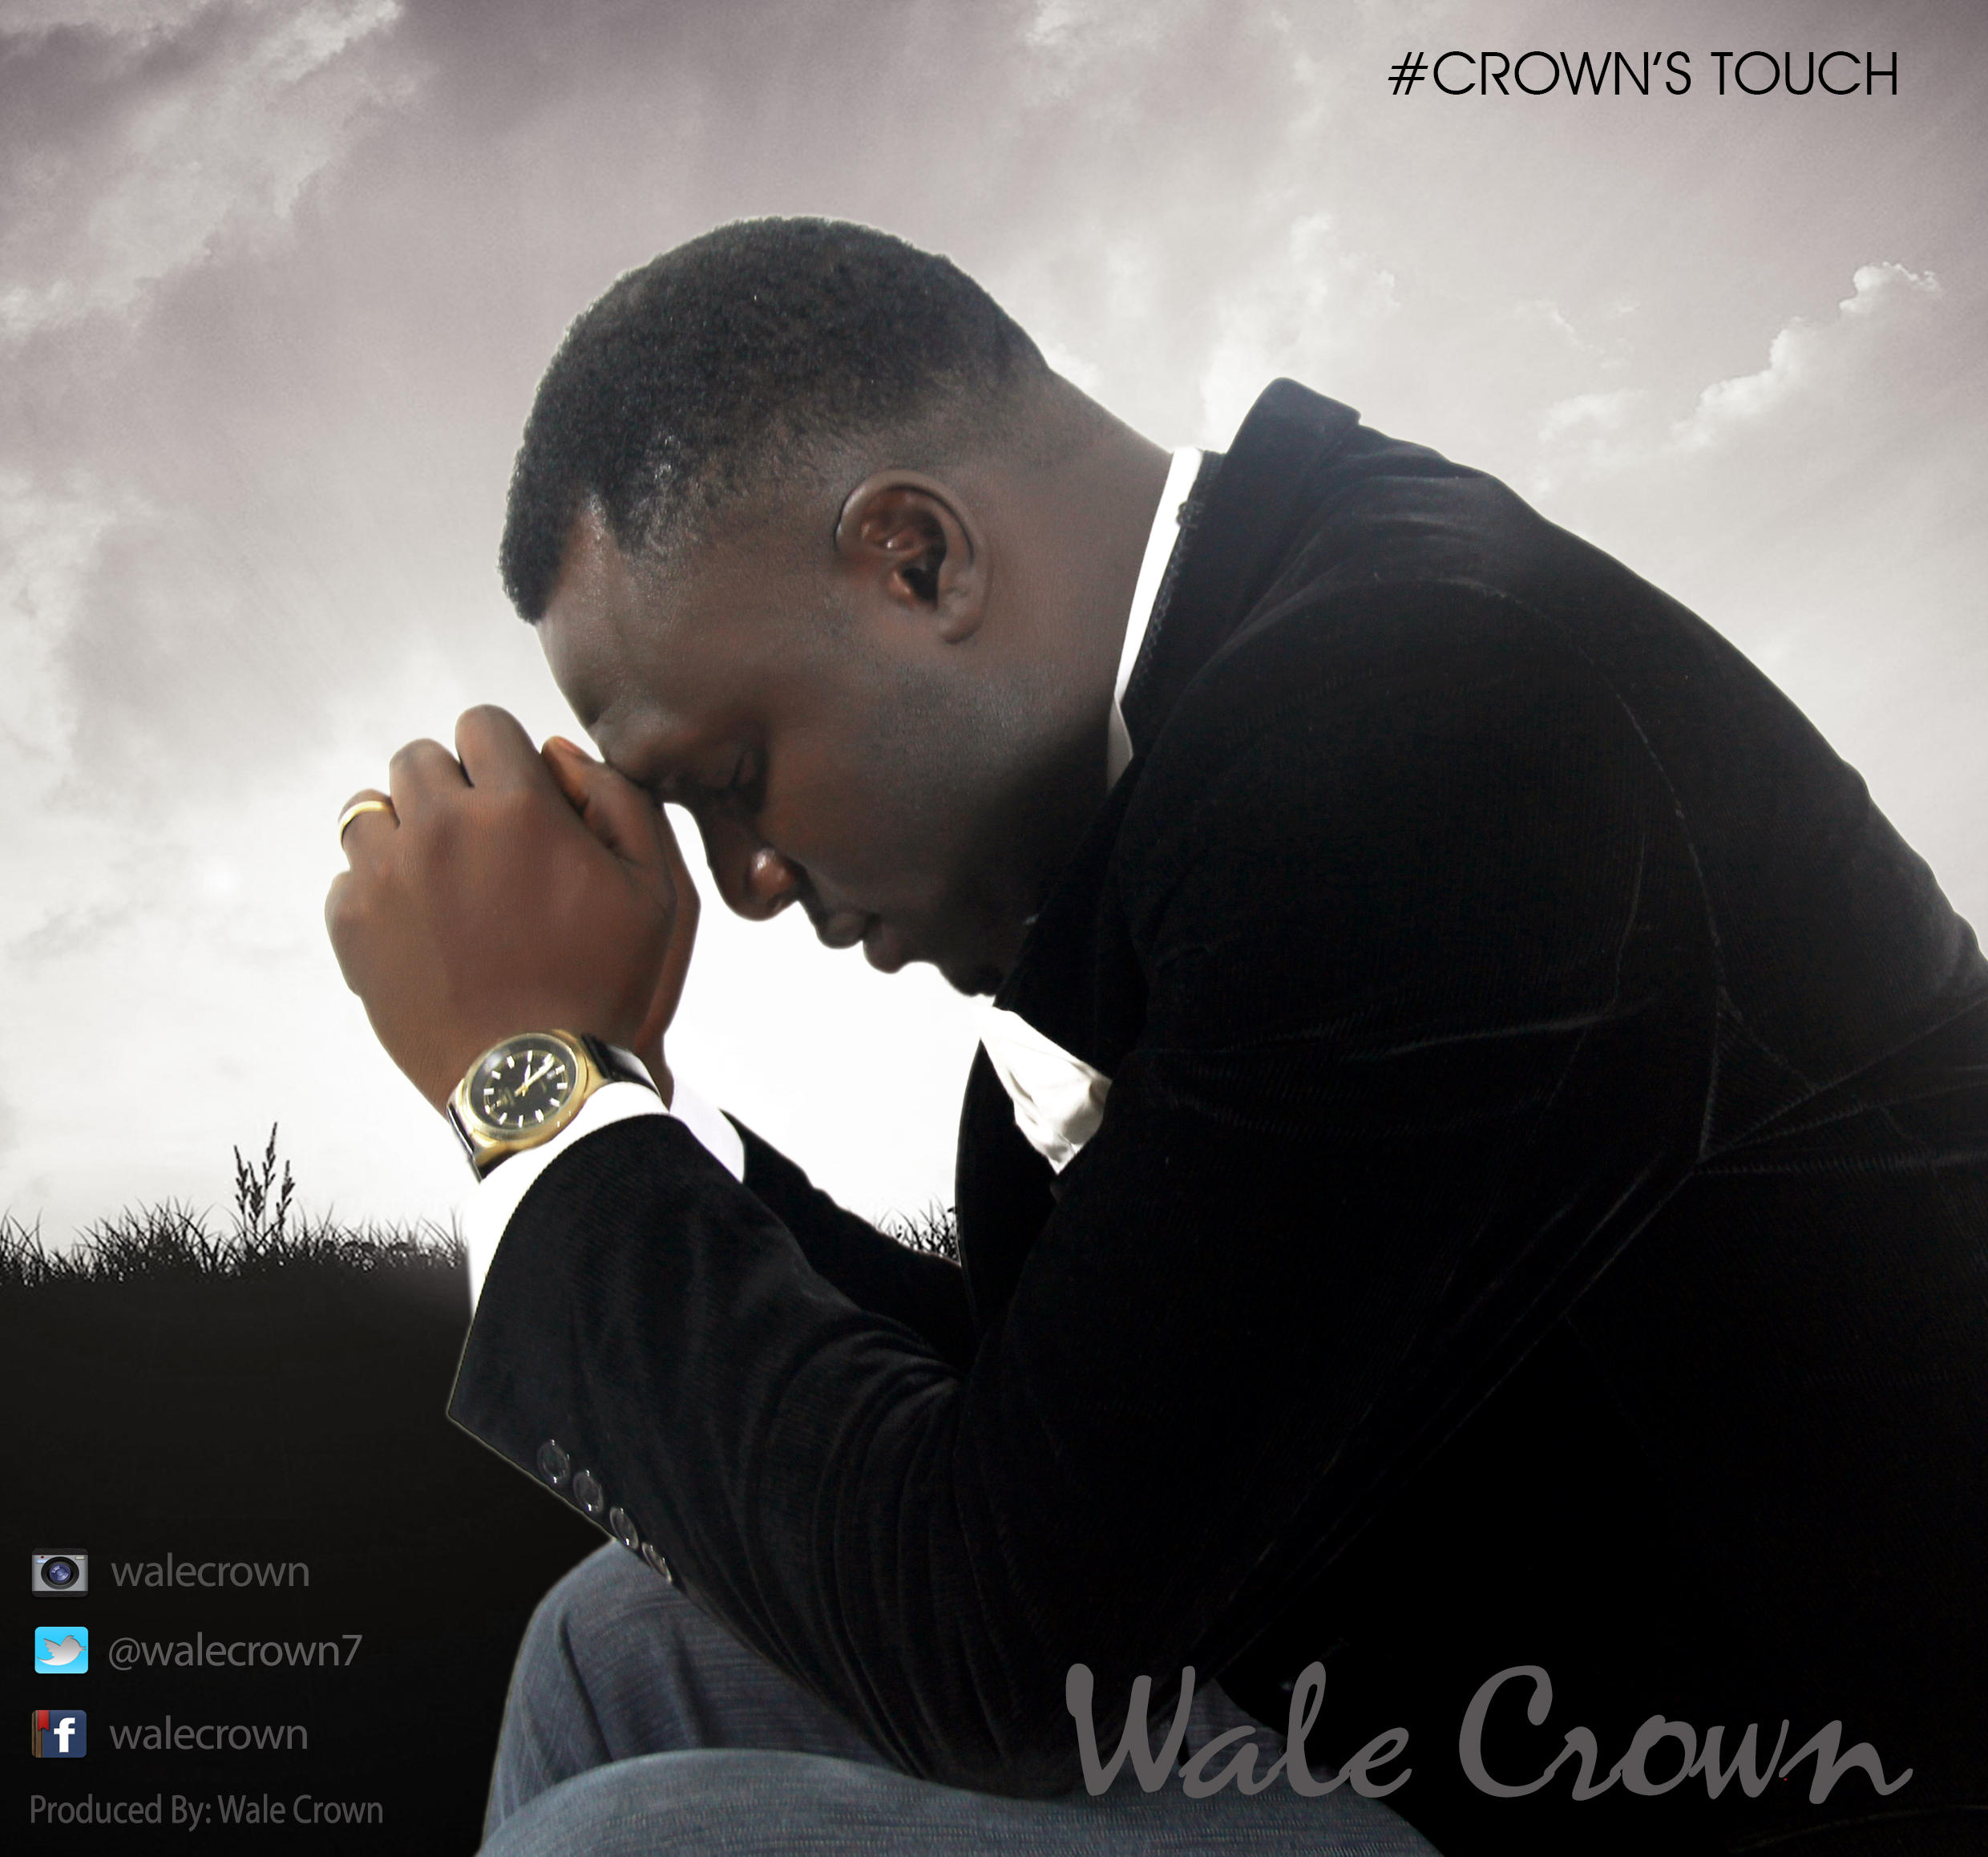 HOLY YOU ARE - Wale Crown [@walecrown7]